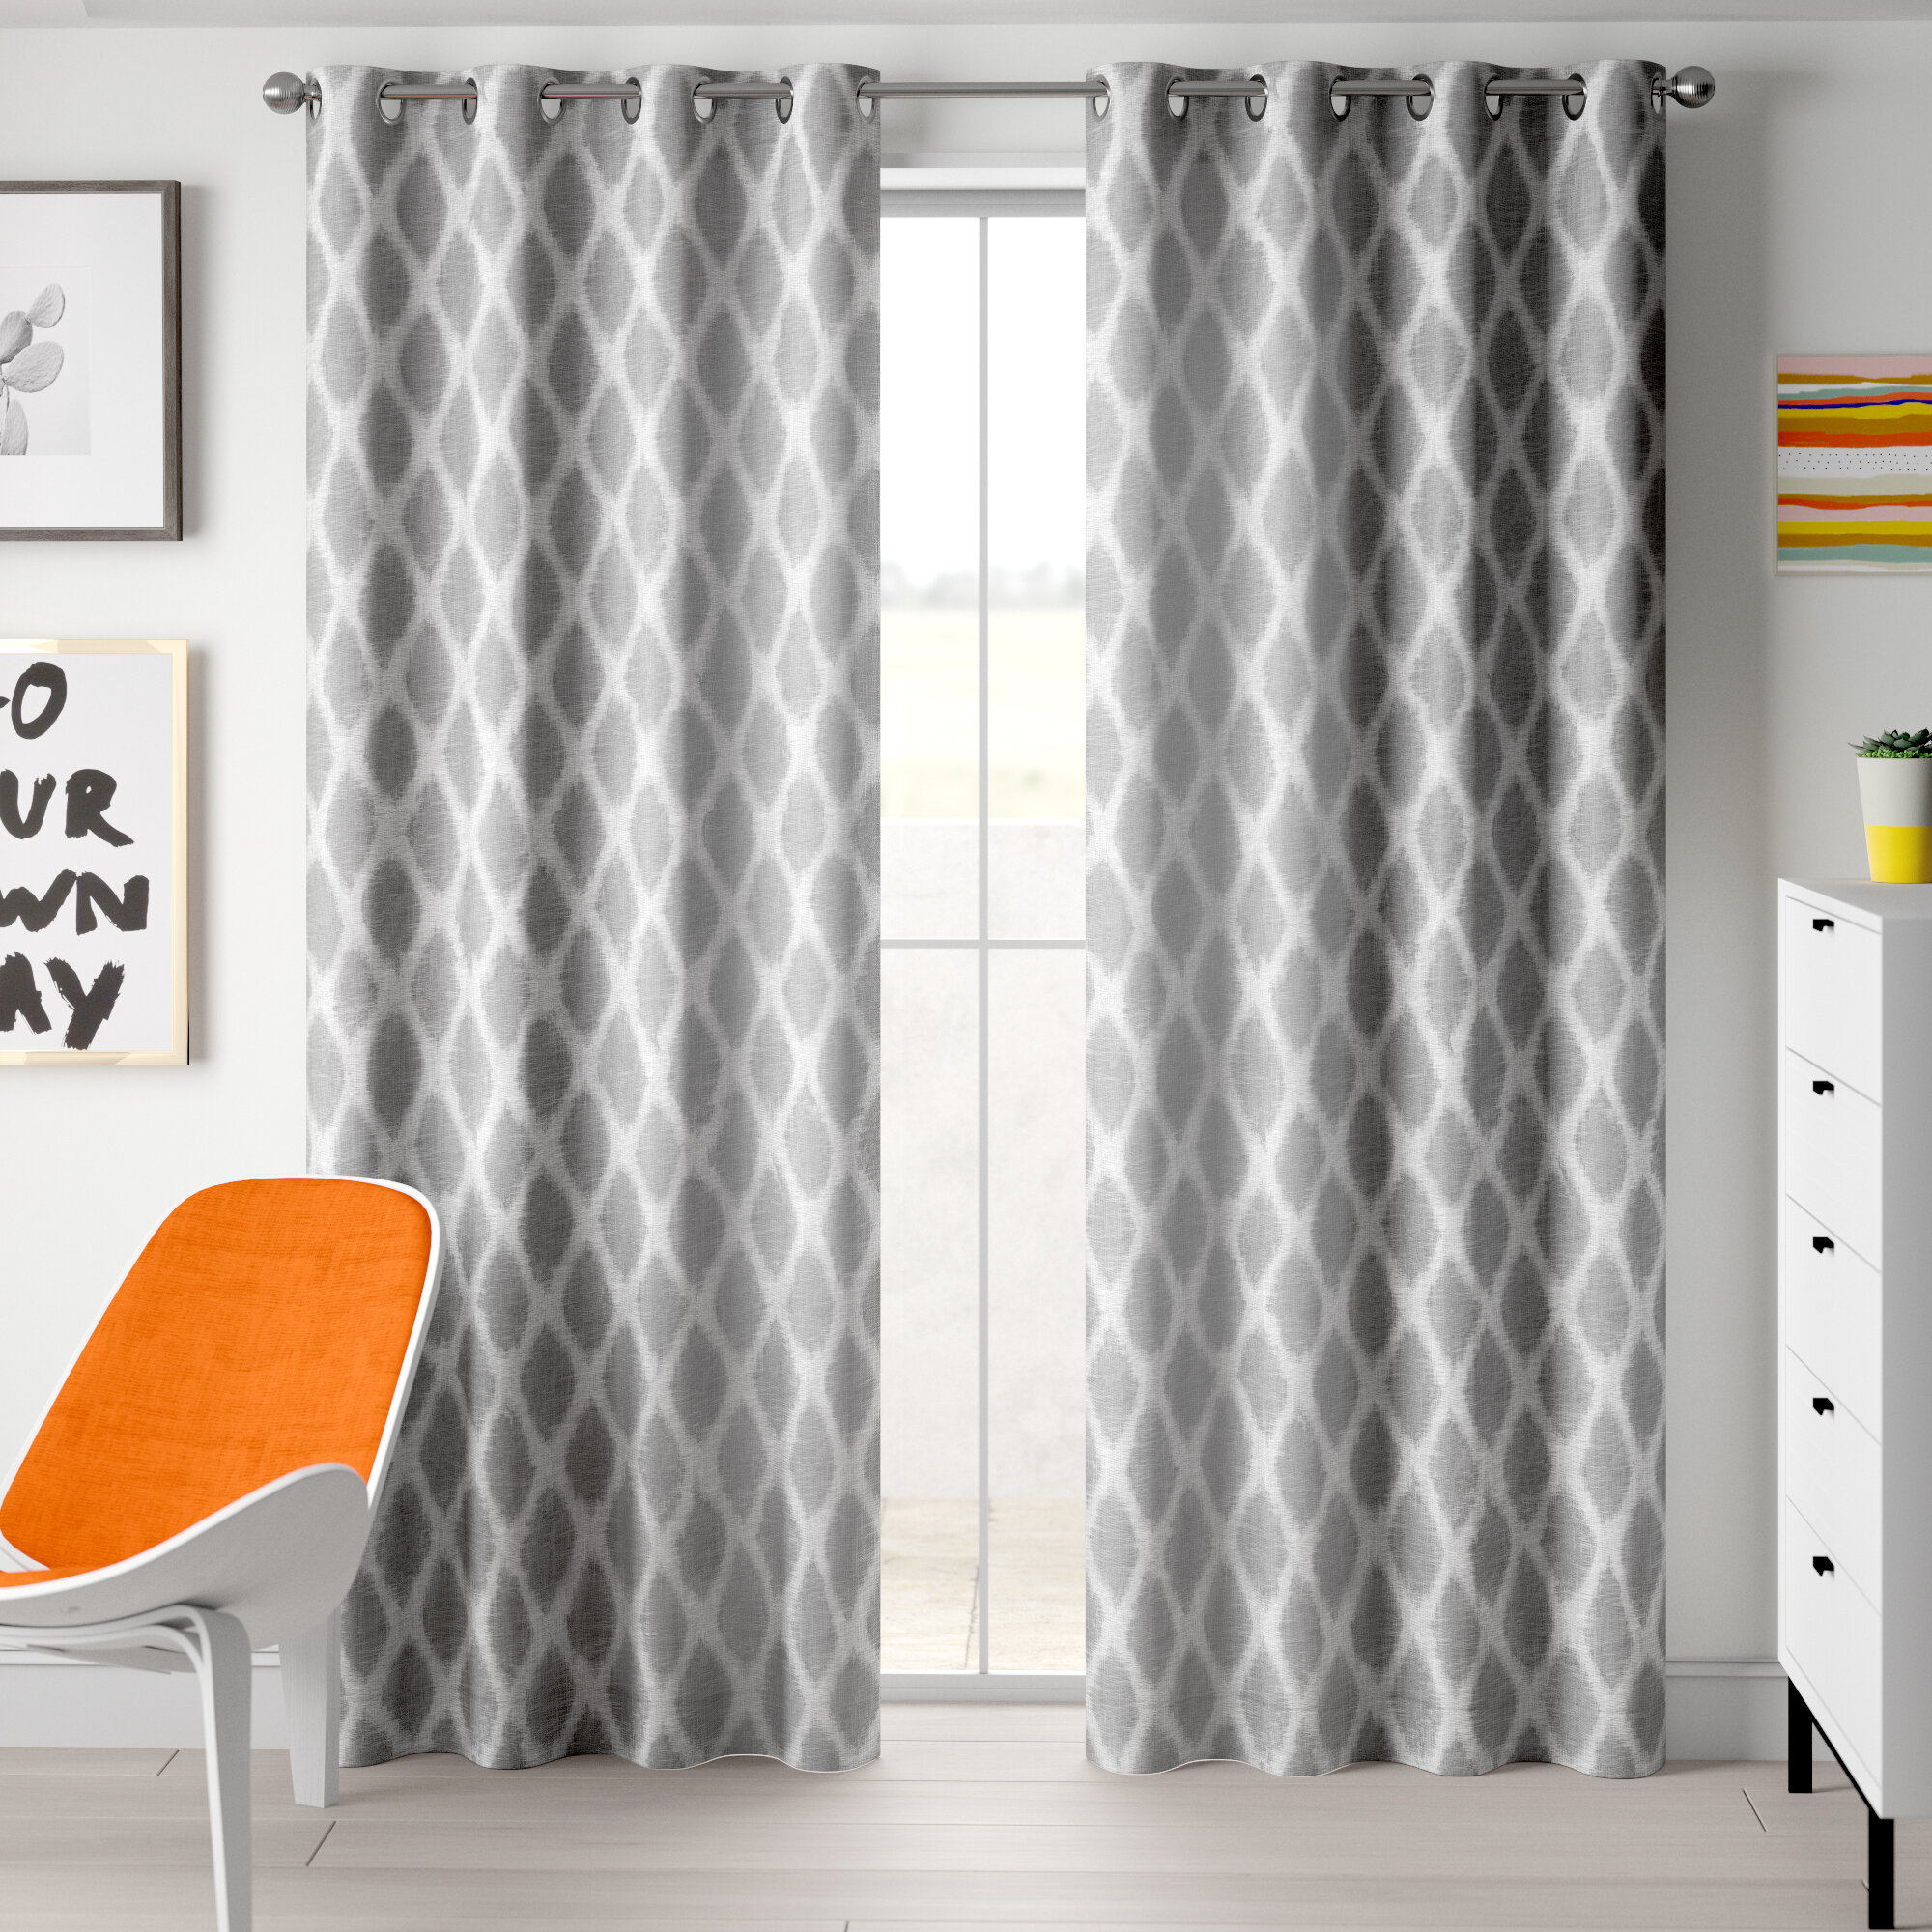 Ebern Designs Hutton Printed Ikat Blackout Single Curtain For Ikat Blue Printed Cotton Curtain Panels (View 5 of 20)